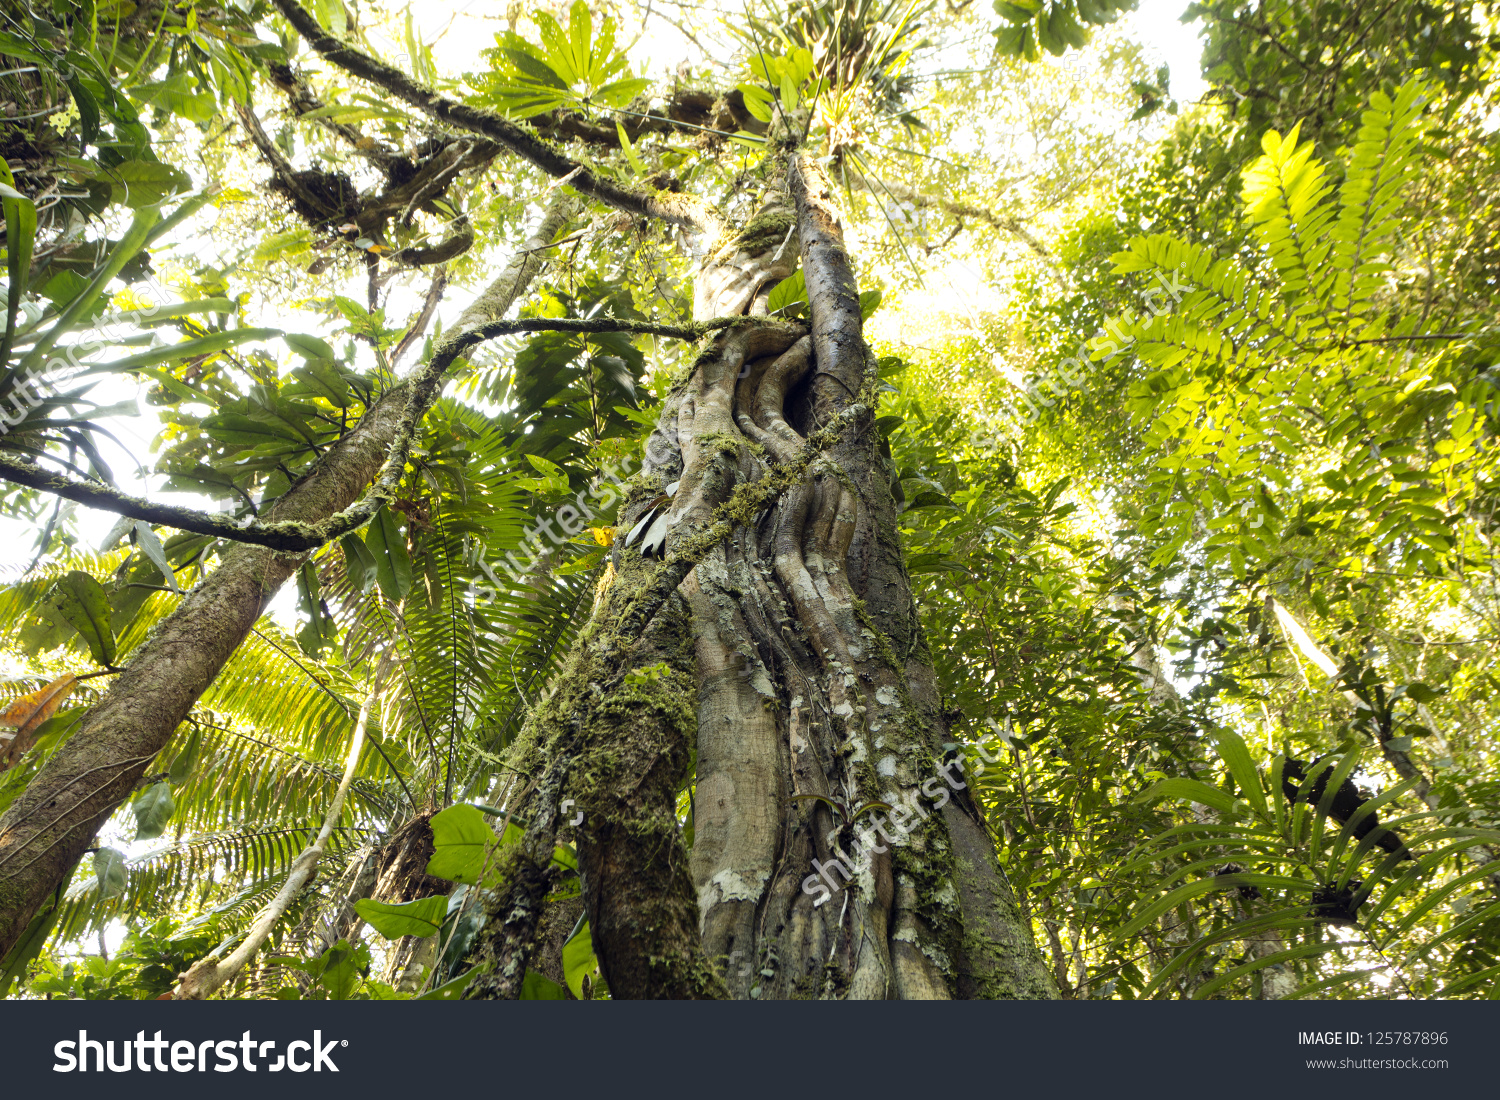 Looking Up A Liana Tangled Tree Trunk To The Rainforest Canopy In.